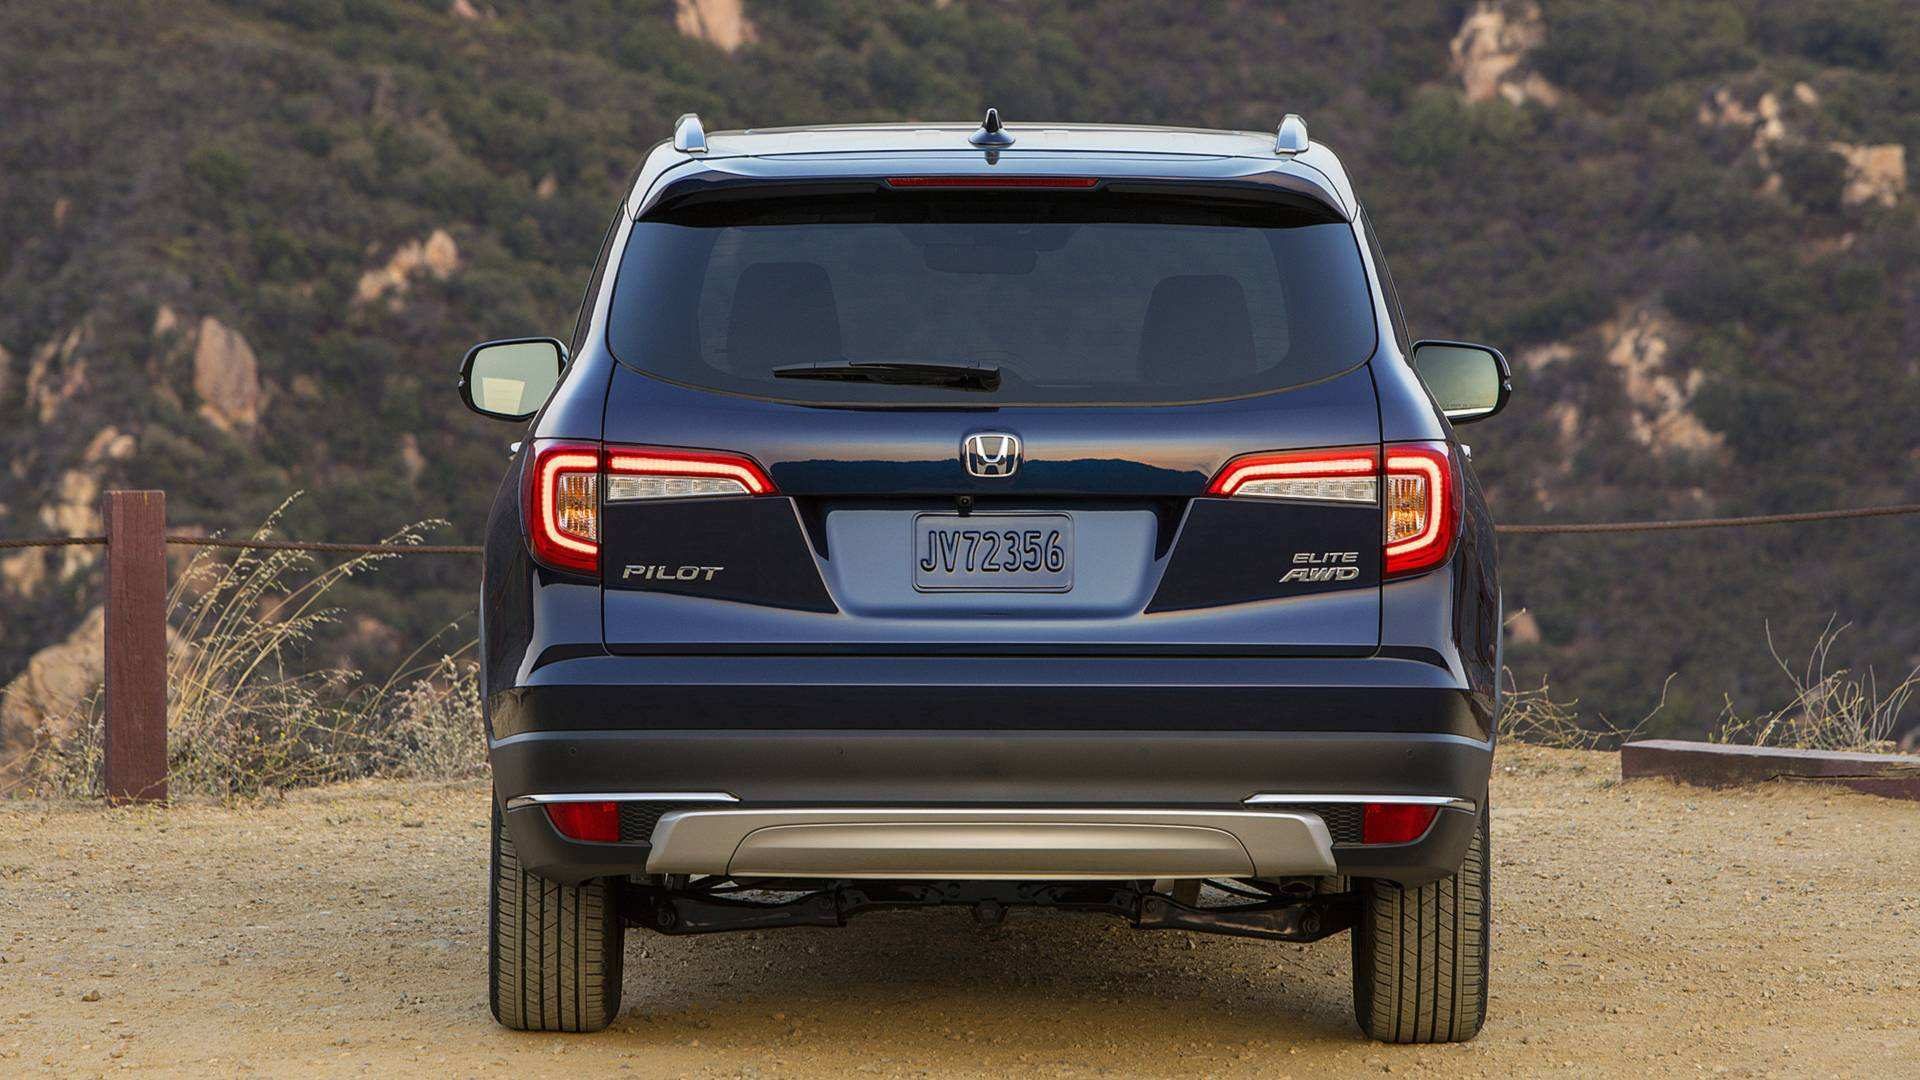 74 New 2019 Honda Pilot Wallpaper with 2019 Honda Pilot